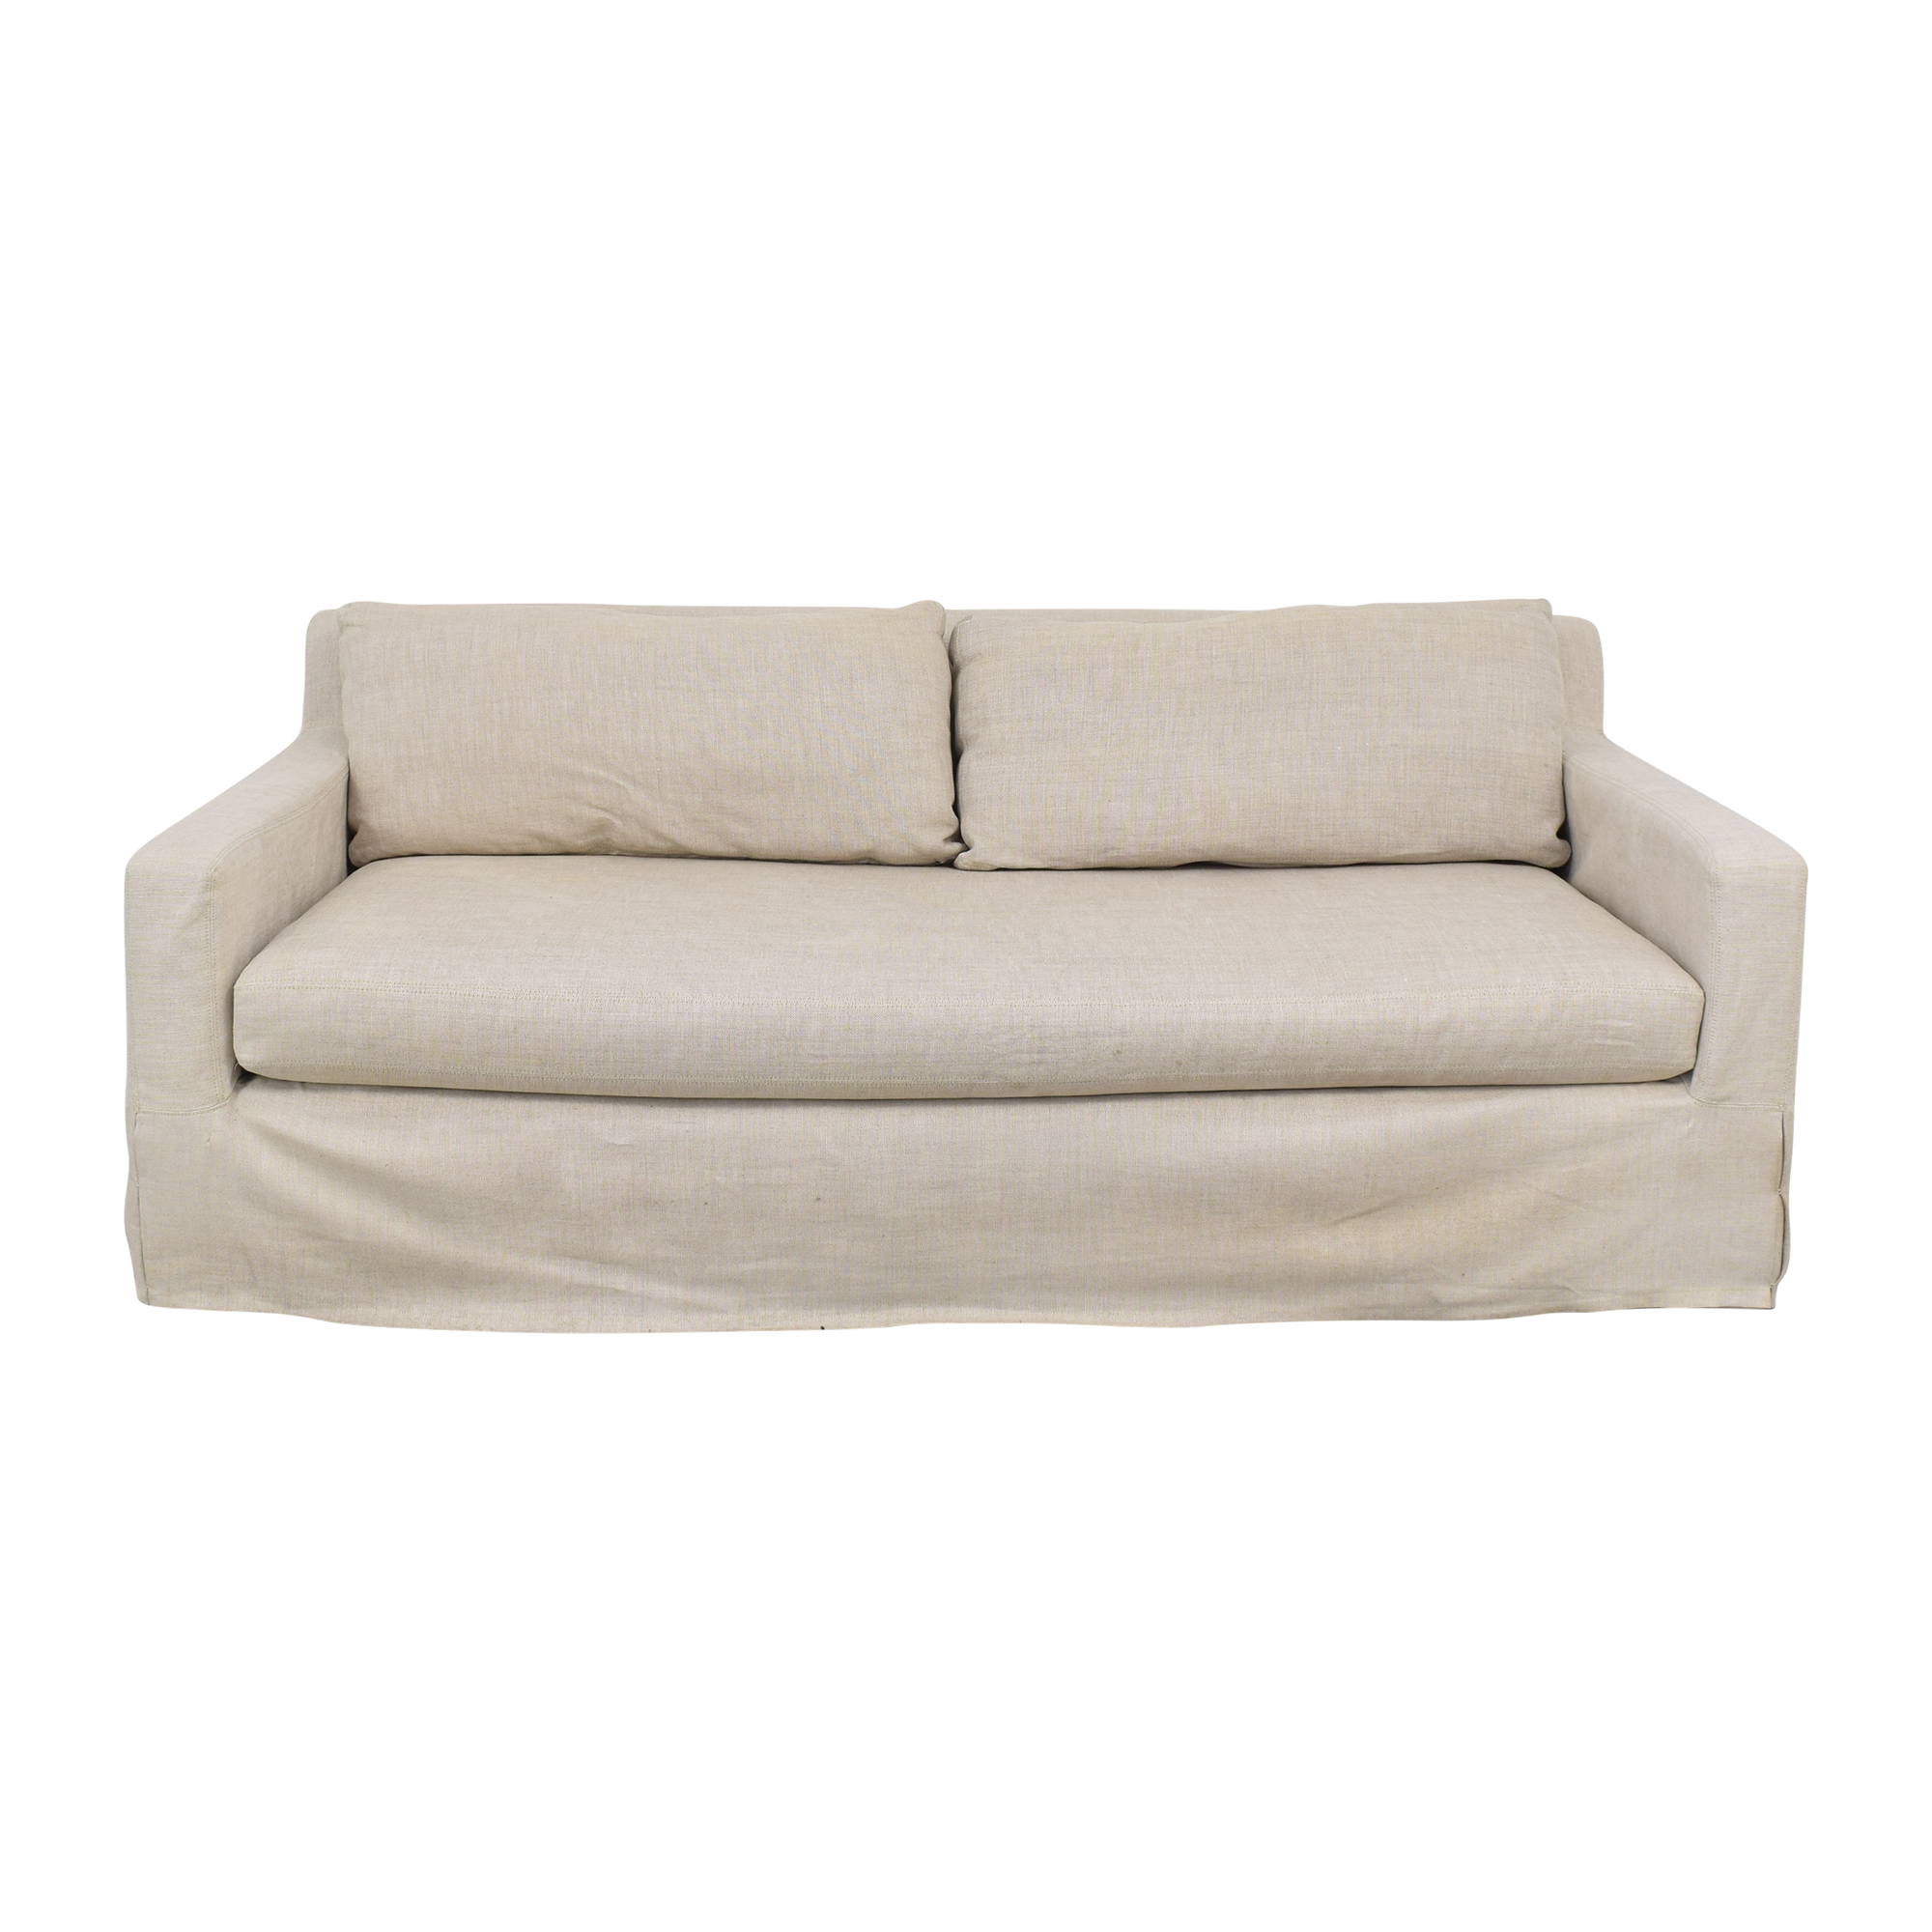 Restoration Hardware Belgian Track Arm Slipcovered Sofa / Sofas